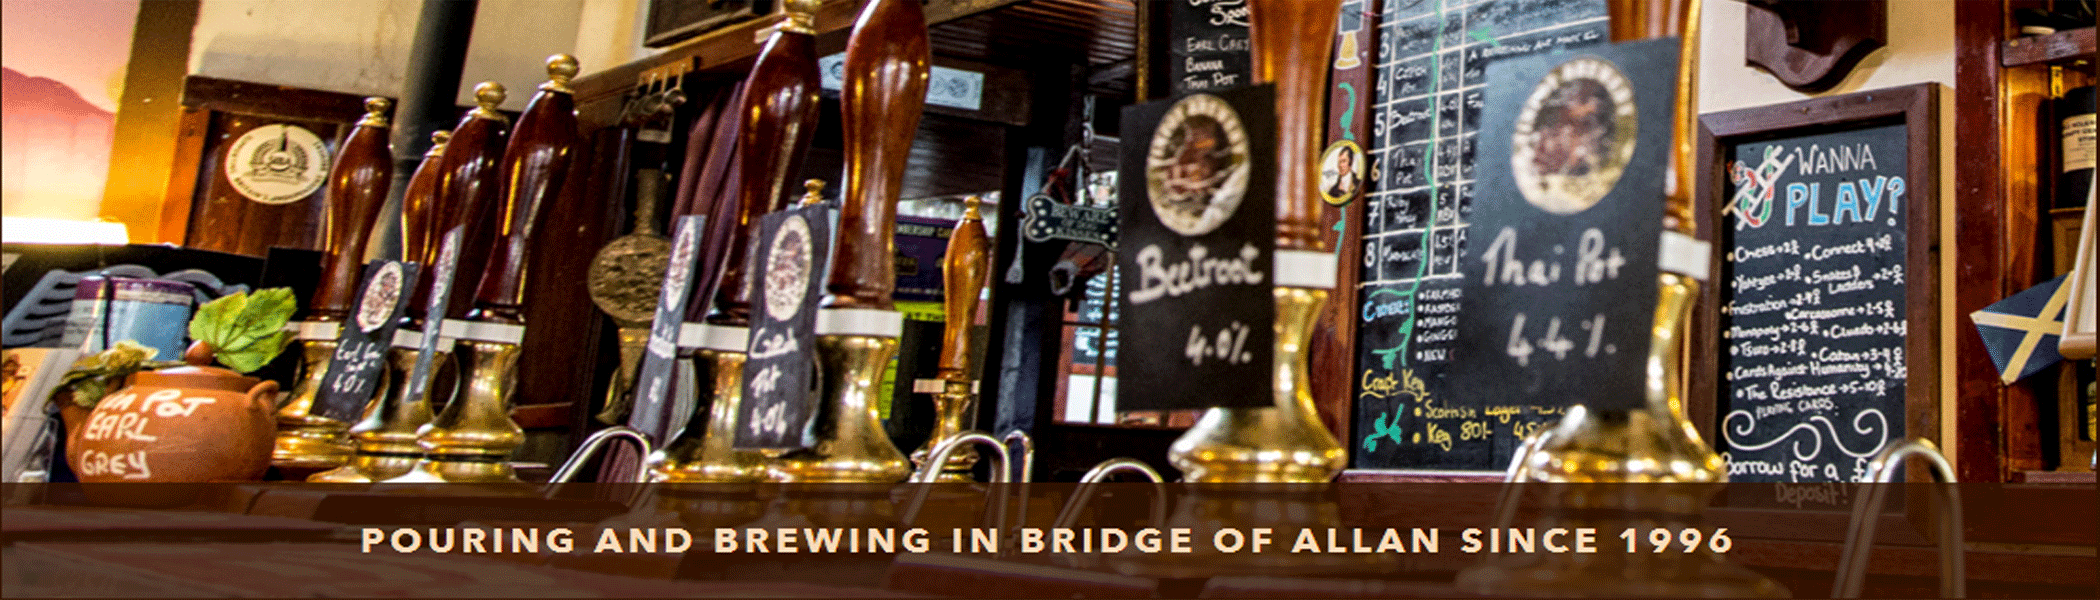 Bridge Of Allan Allanwater Brewhouse